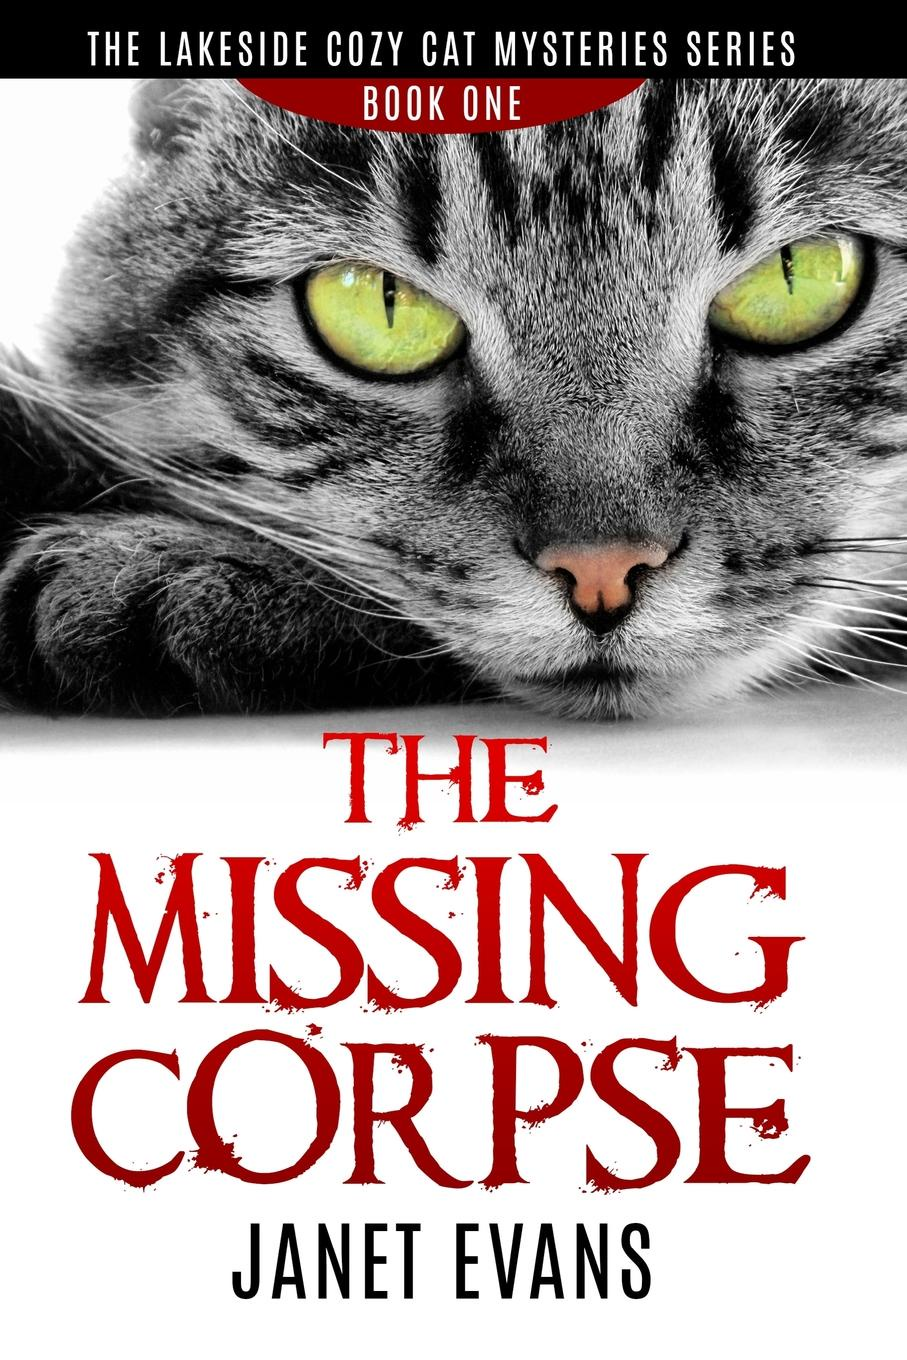 Janet Evans The Missing Corpse - The Lakeside Cozy Cat Mysteries Series susan carlisle the rebel doc who stole her heart